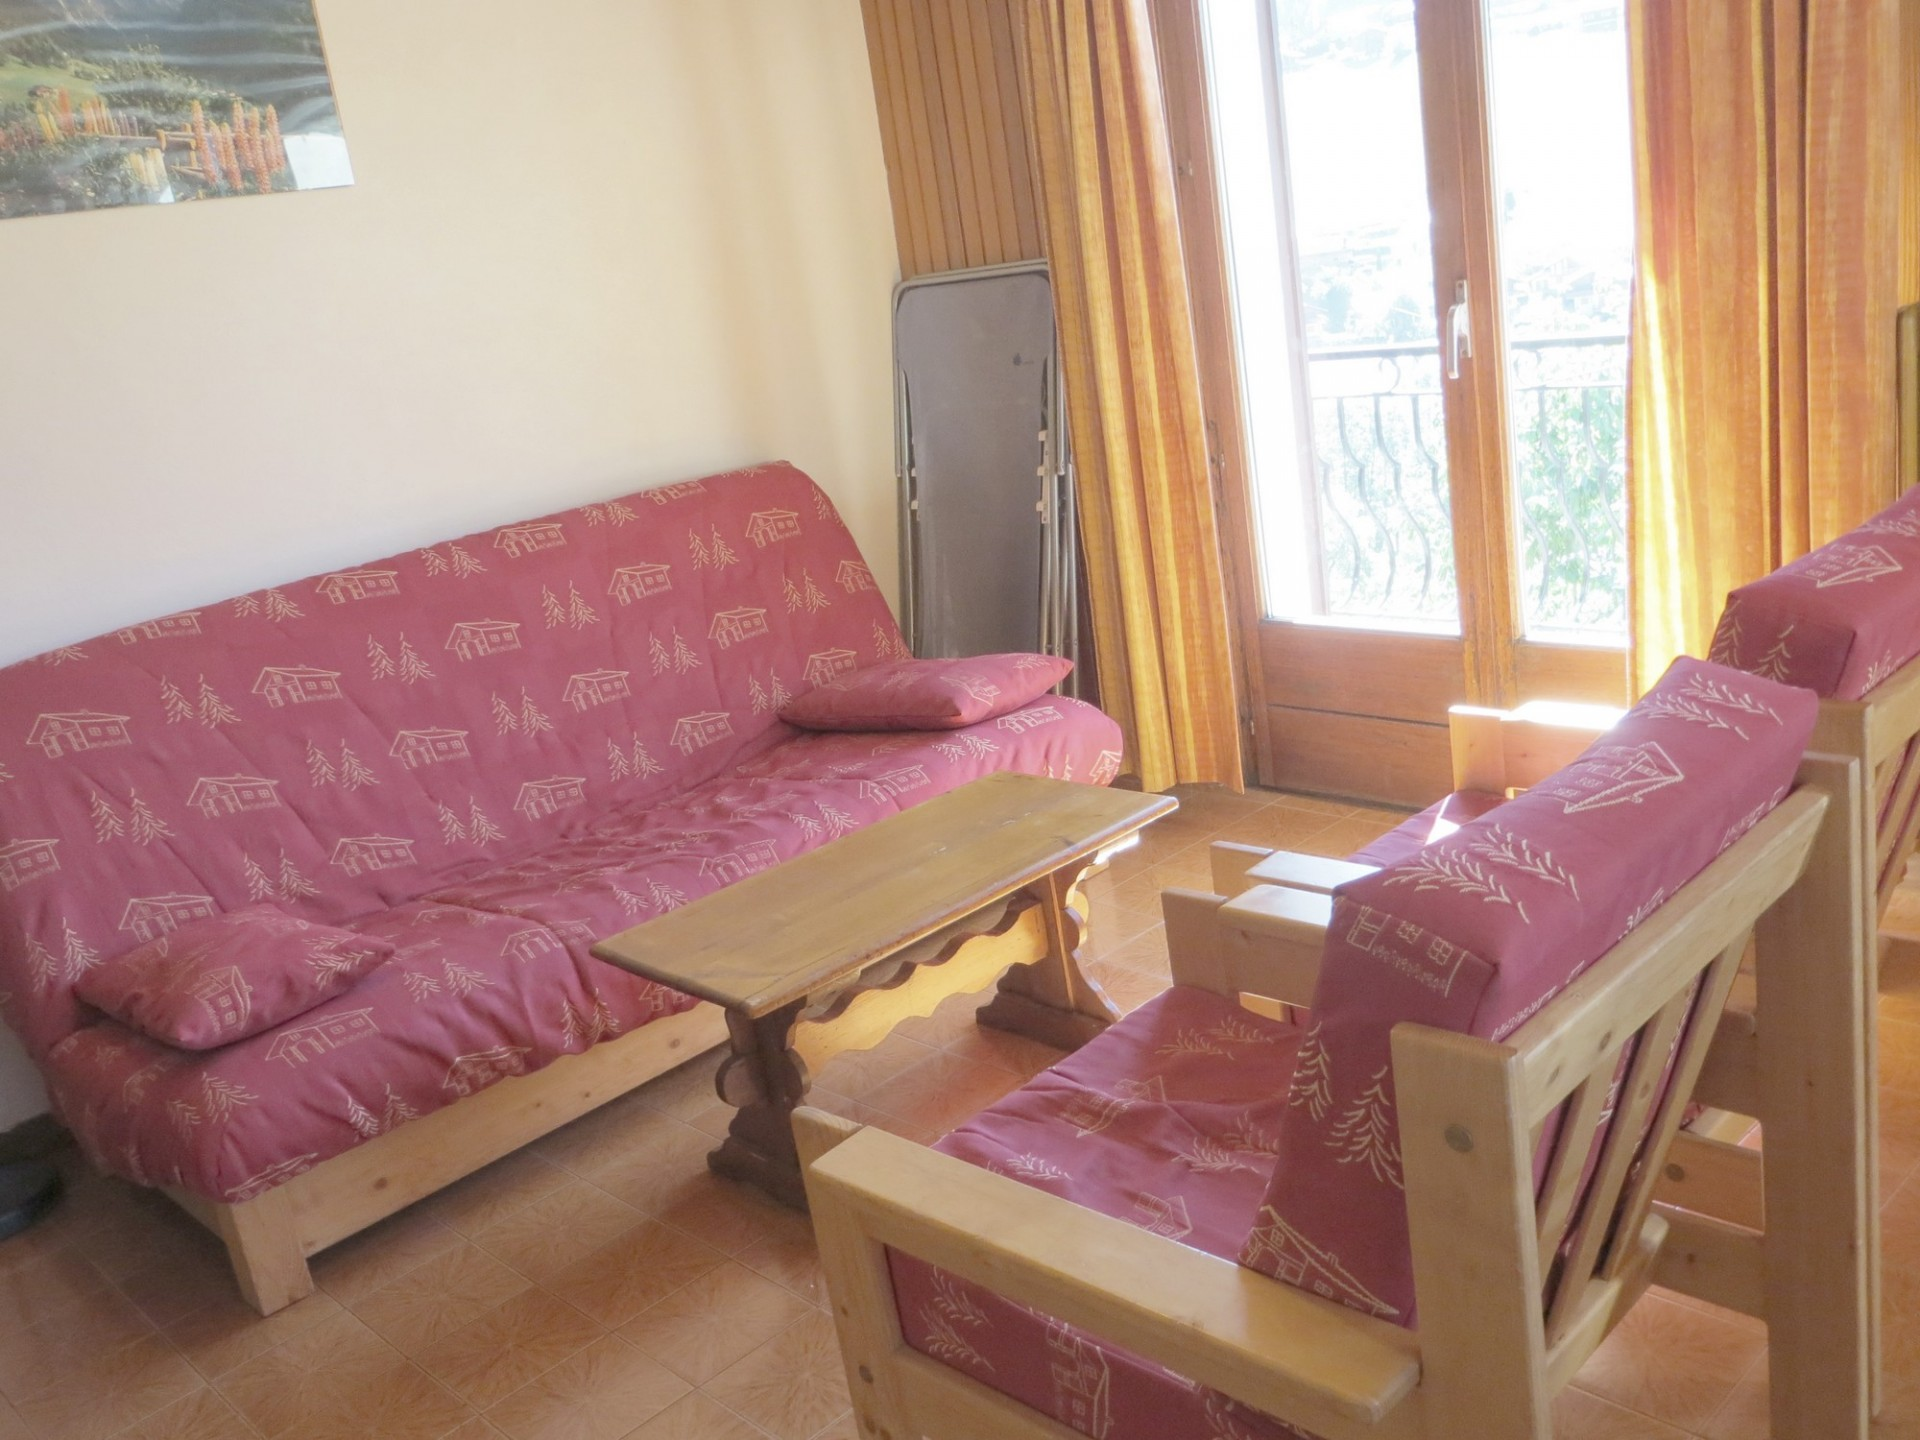 location appartement-5 personnes-chalet le corzolet,-Les Gets